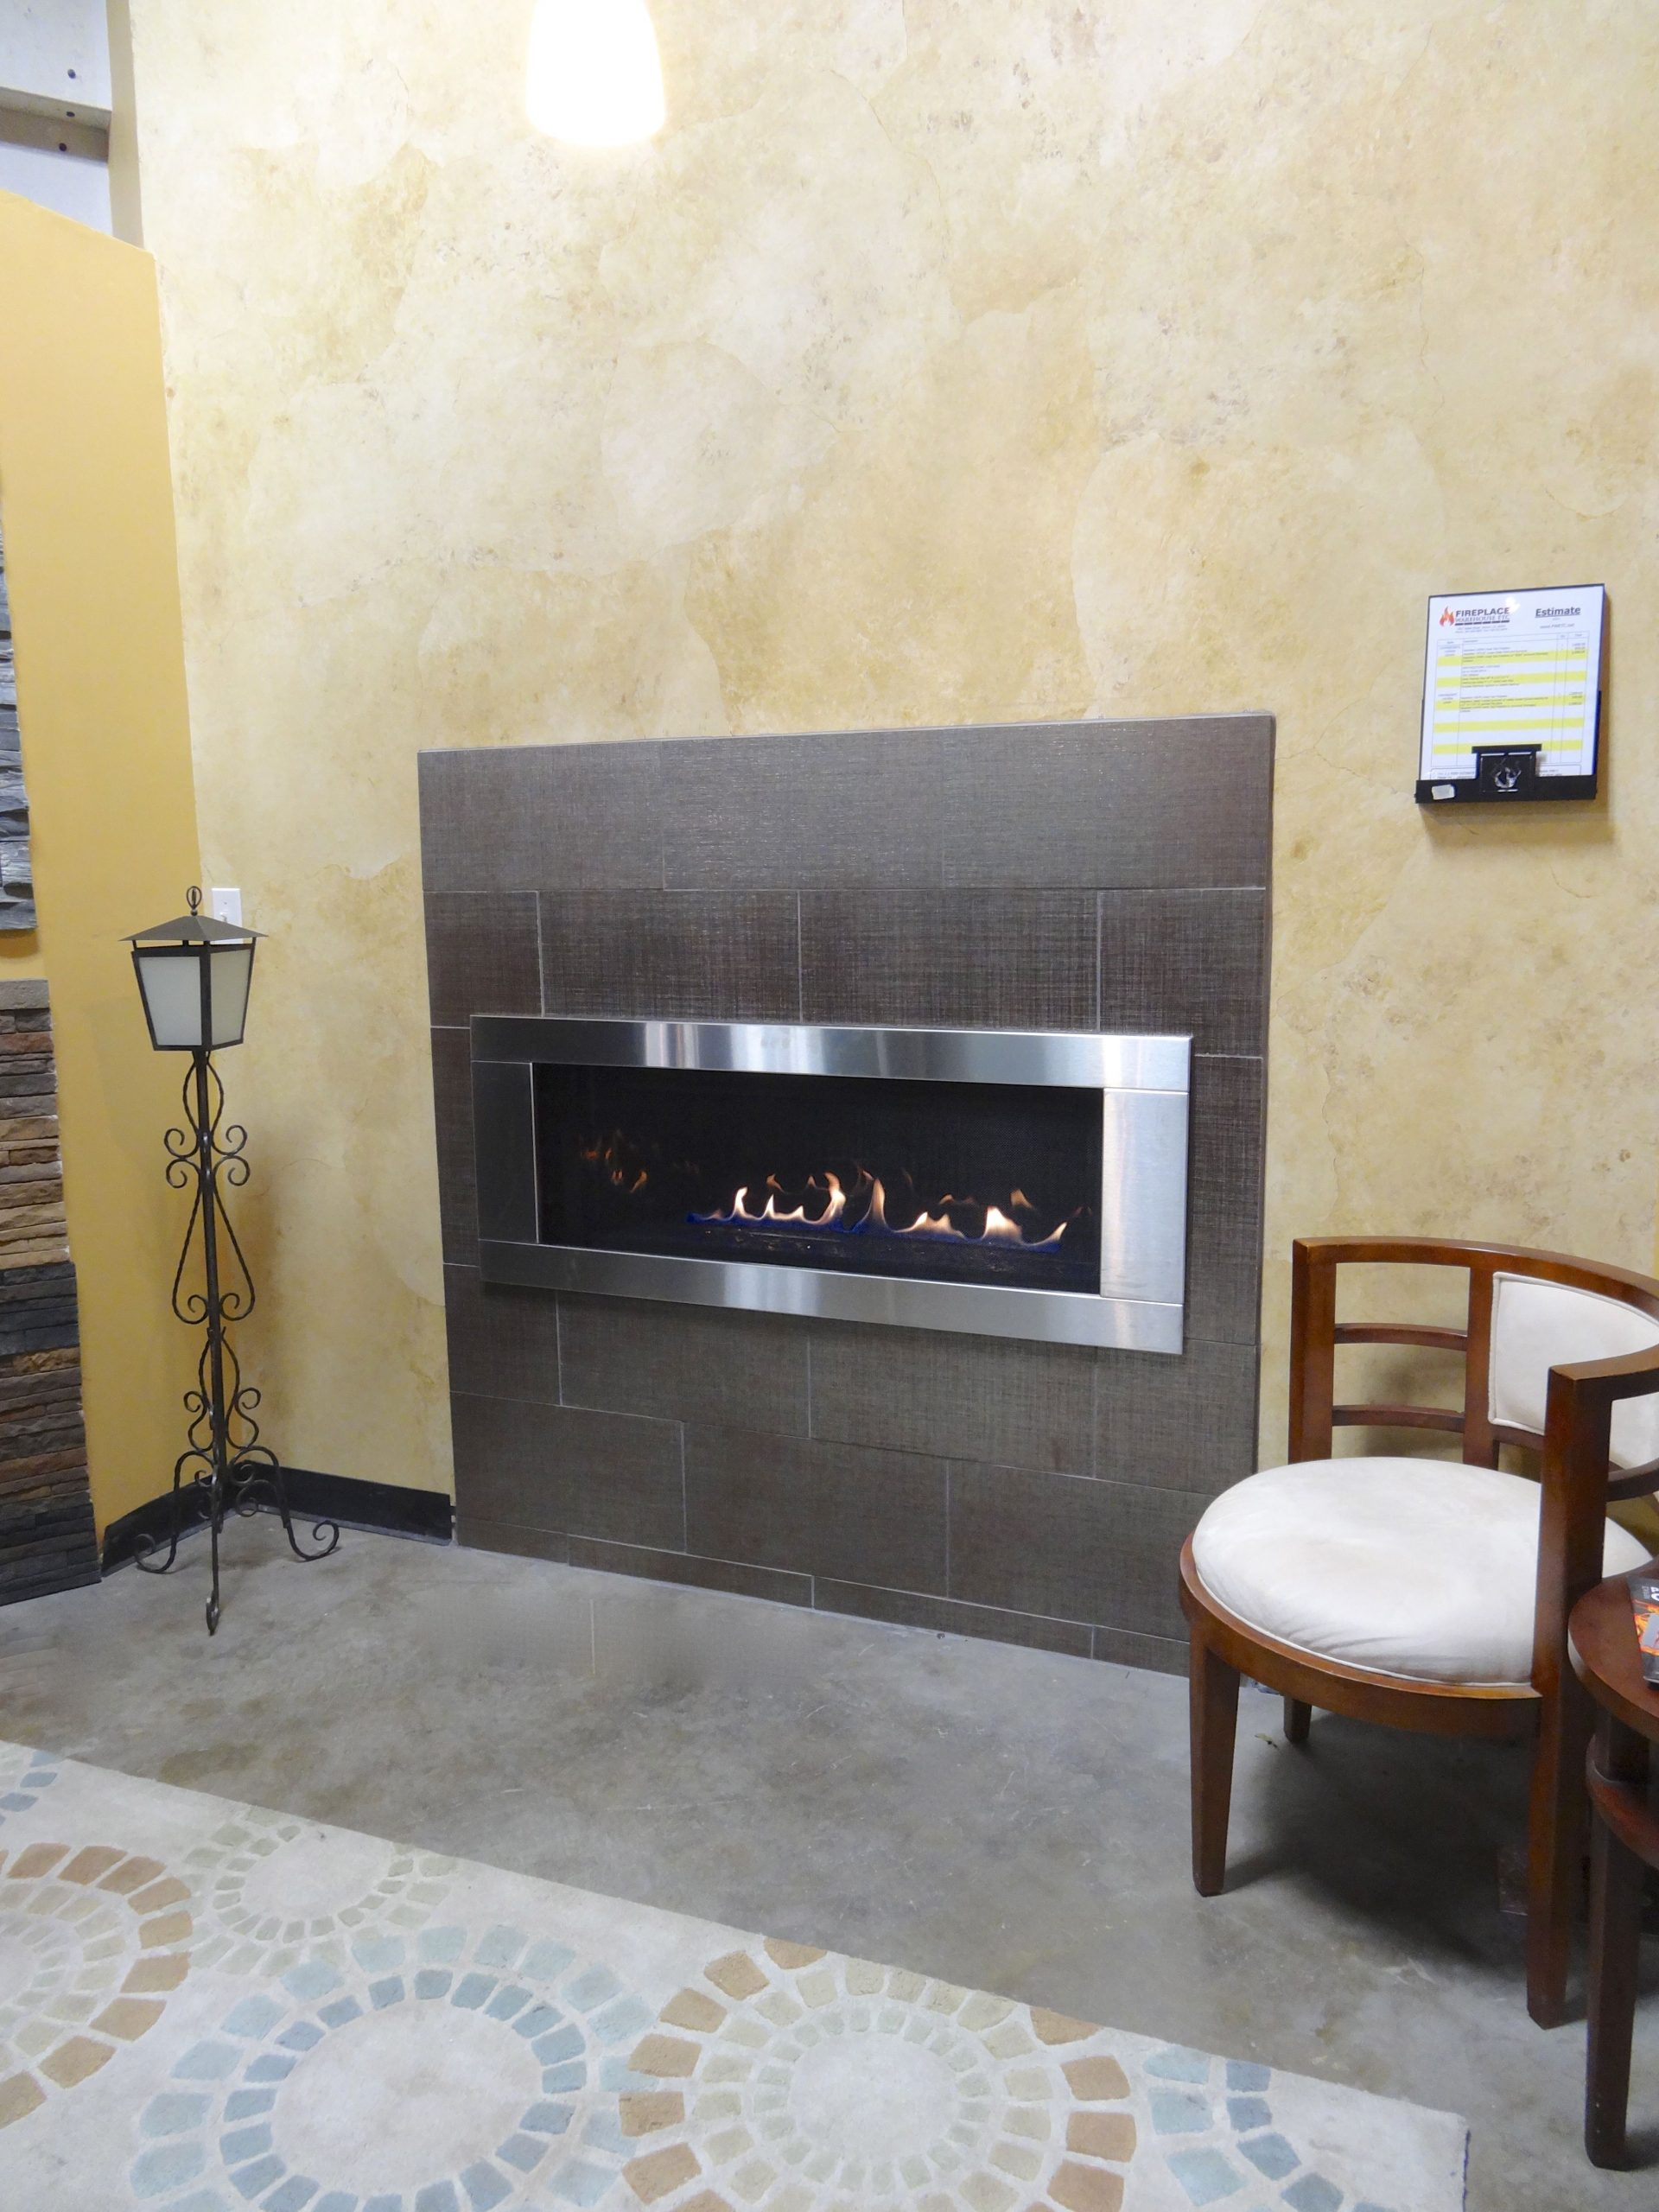 Fireplace Warehouse Etc Fresh Napoleon Lhd45 with Stainless Steel Surround and Screen